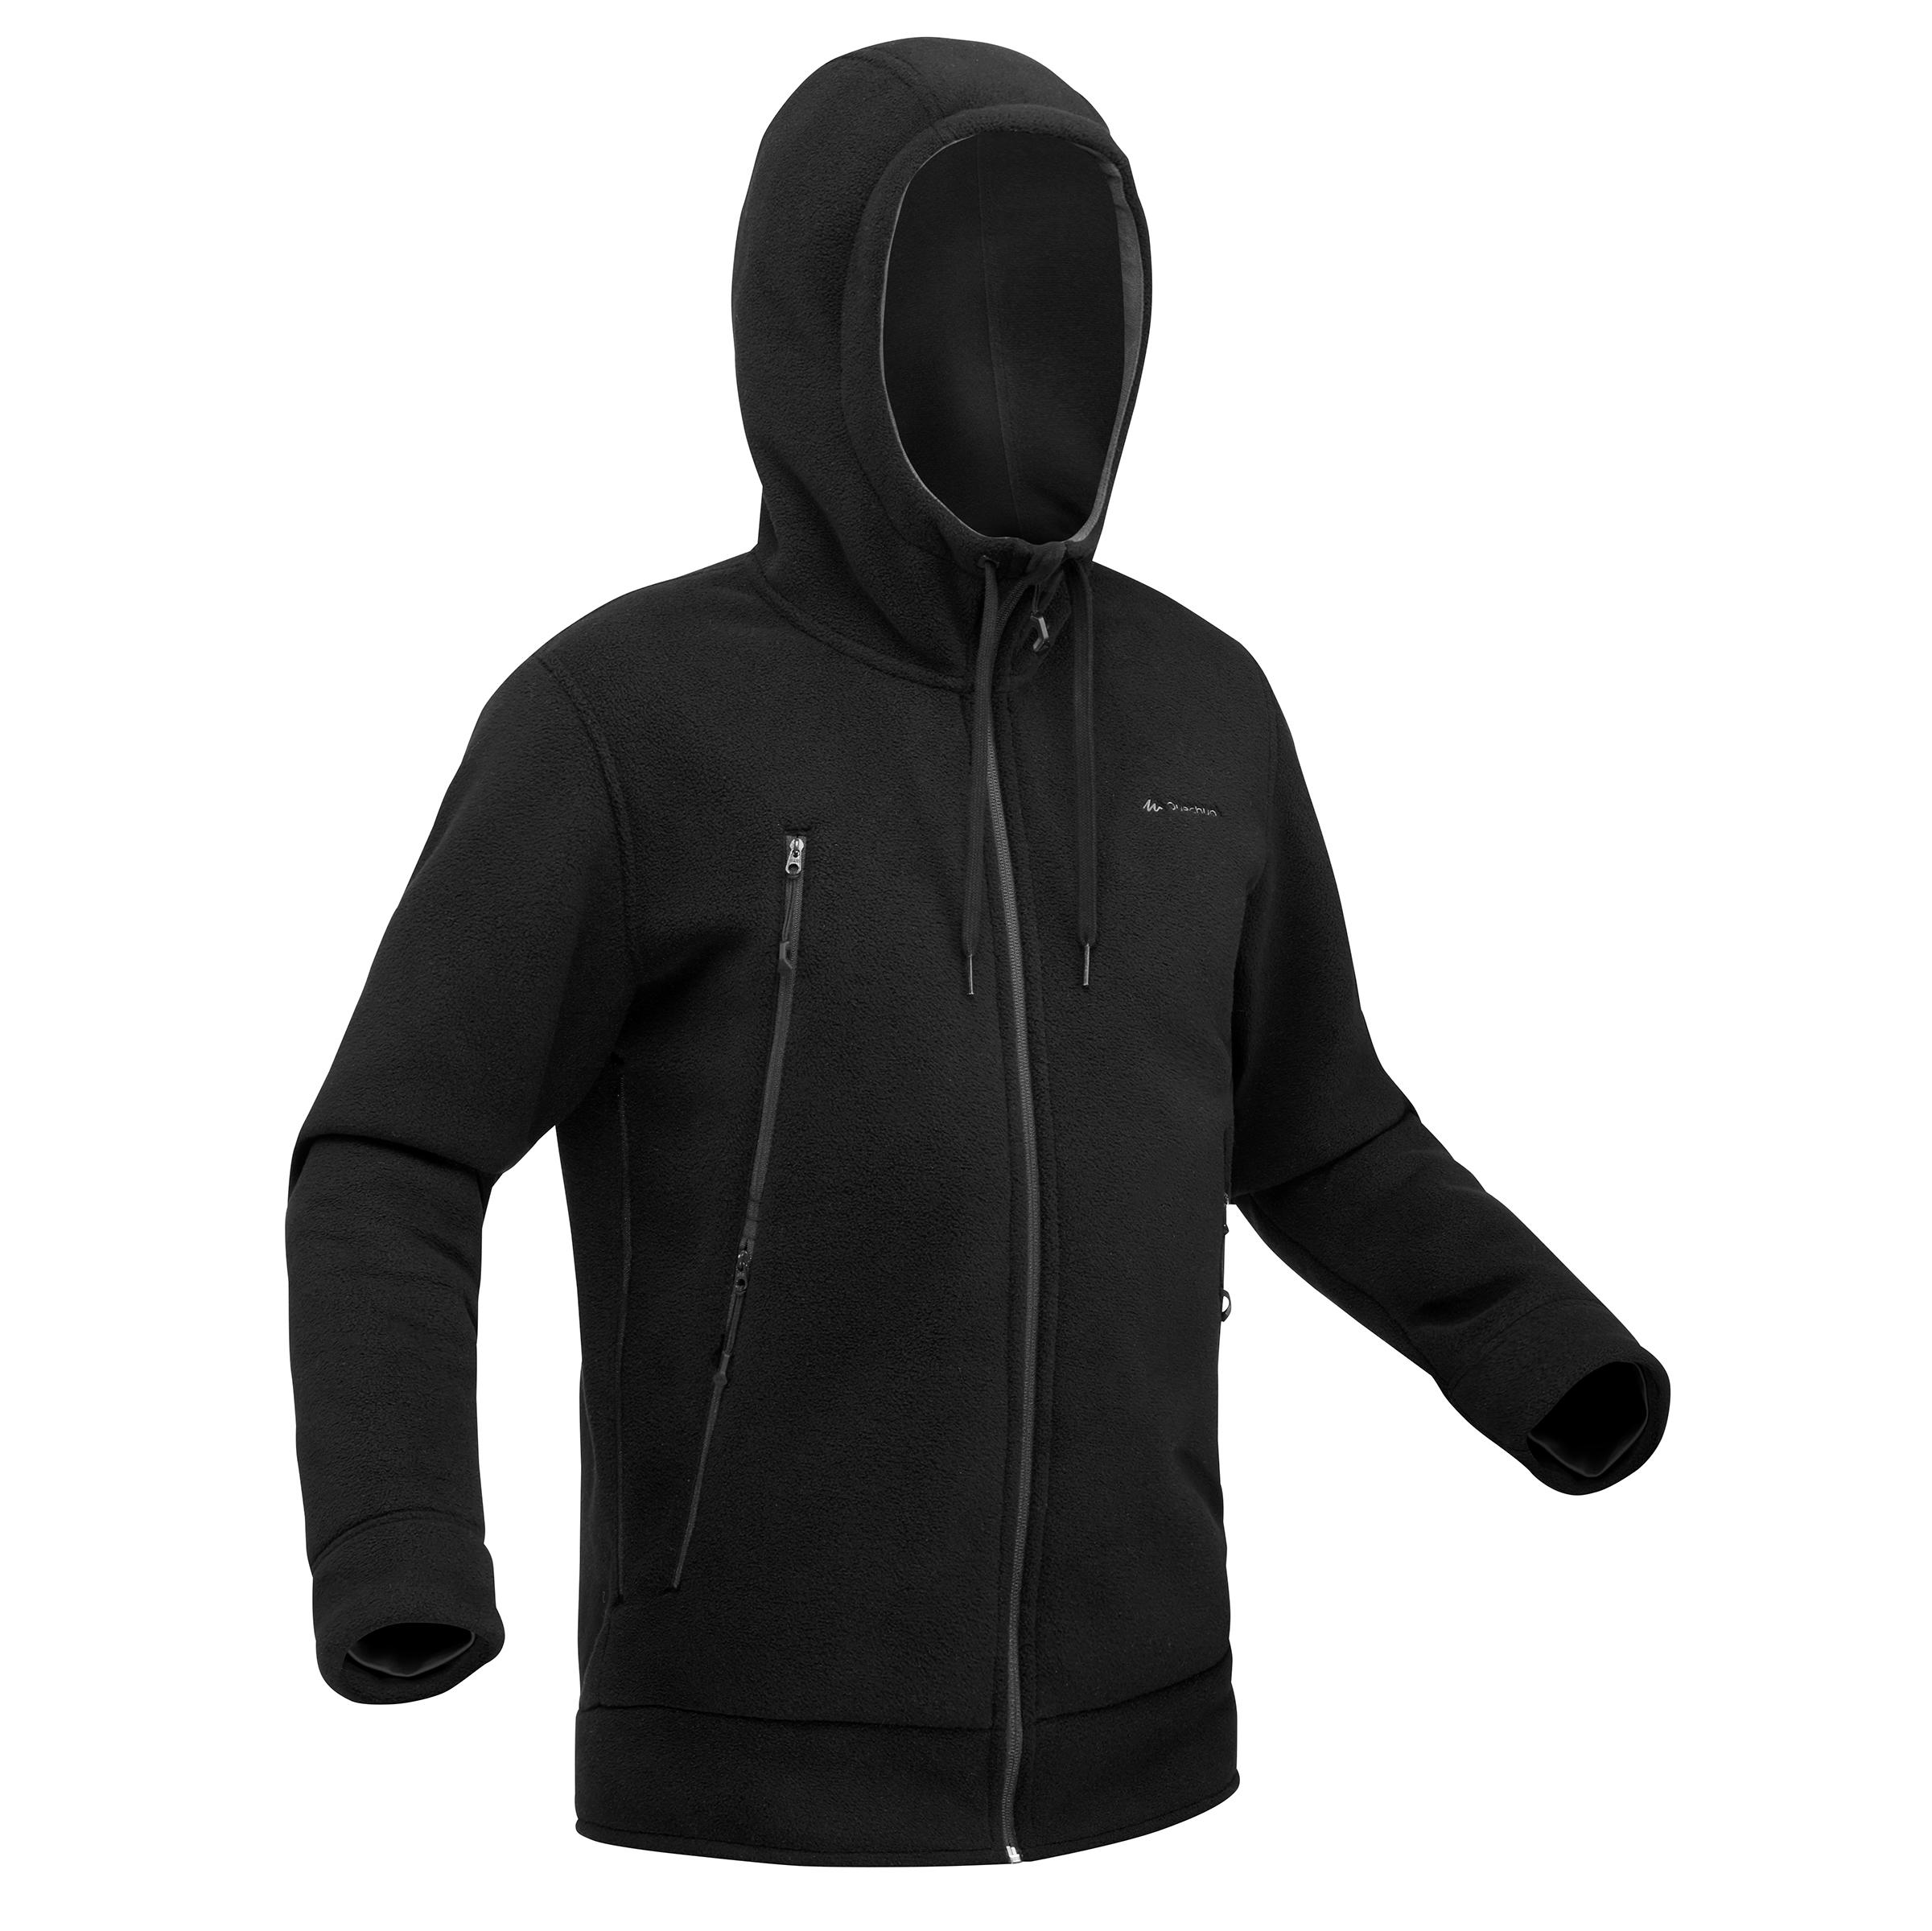 SH100 Men's Ultra-Warm Black Snow Hiking Fleece Jacket.